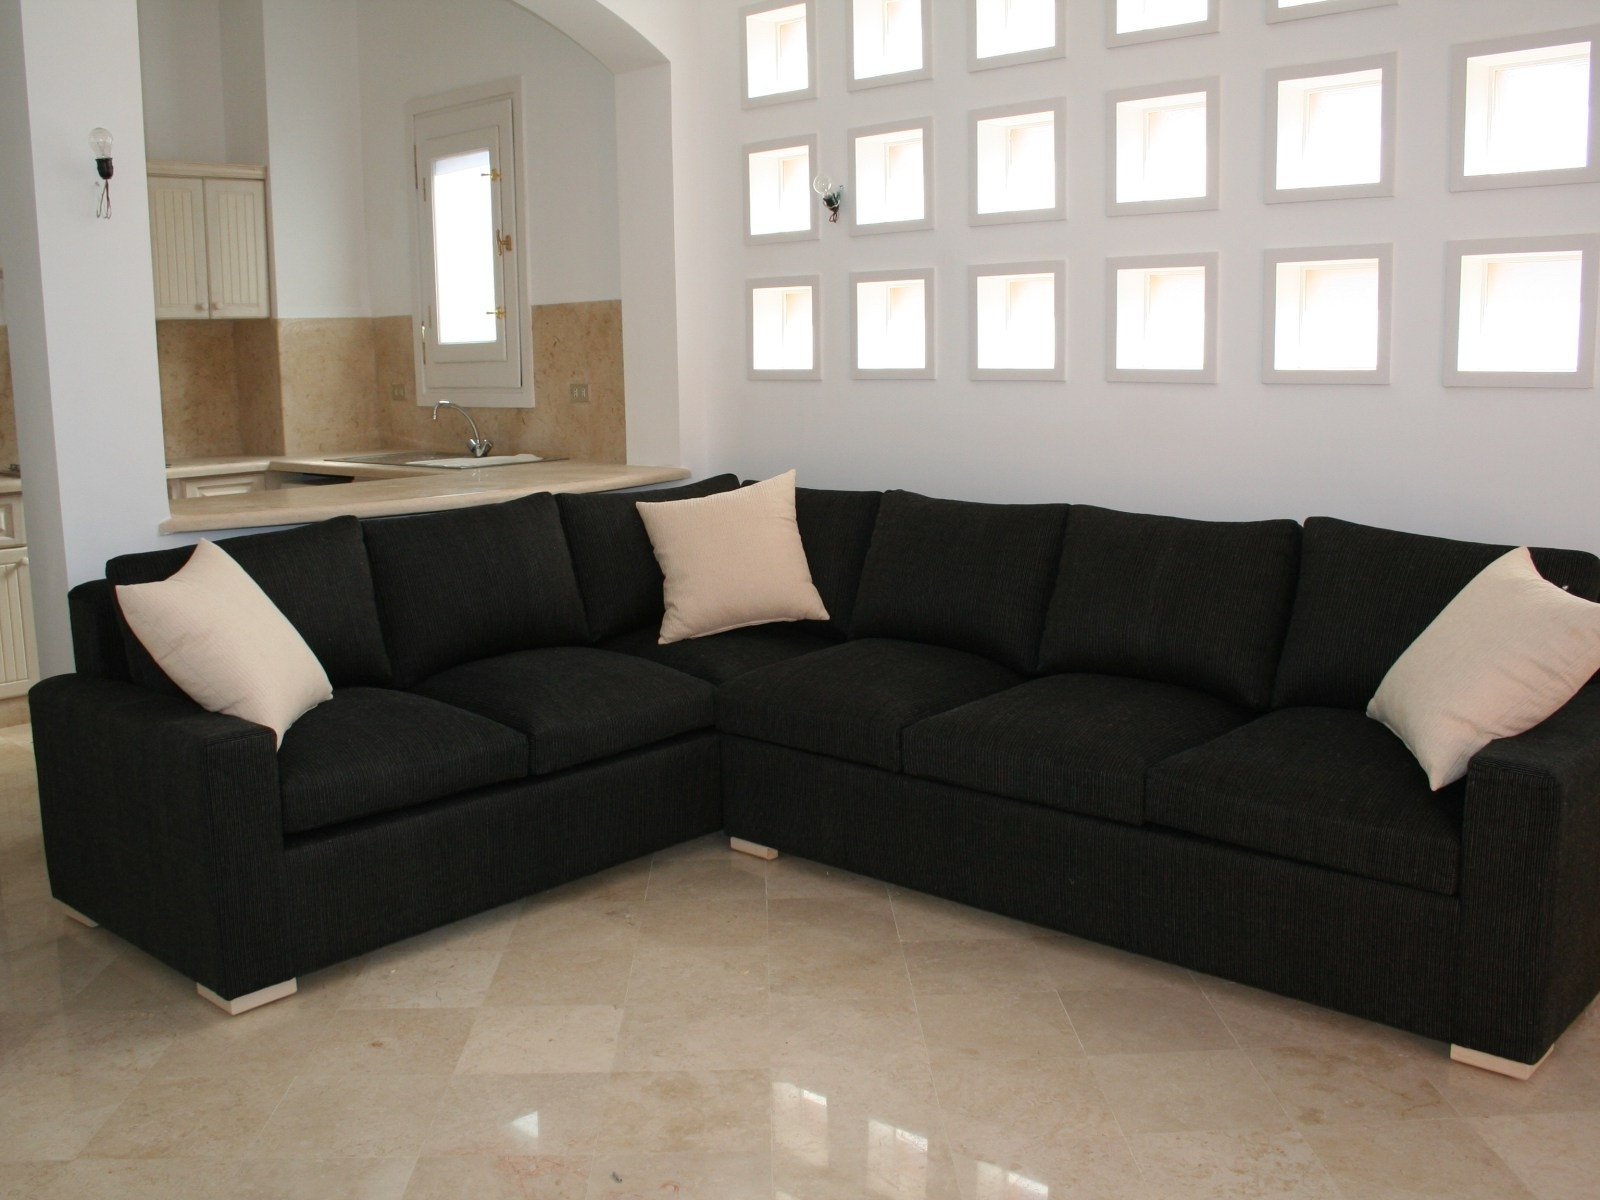 ▻ Sofa : 9 Grand Small Leather Sectional Sofa With Chaise Ebbe16 Intended For Recent Grand Furniture Sectional Sofas (View 6 of 15)